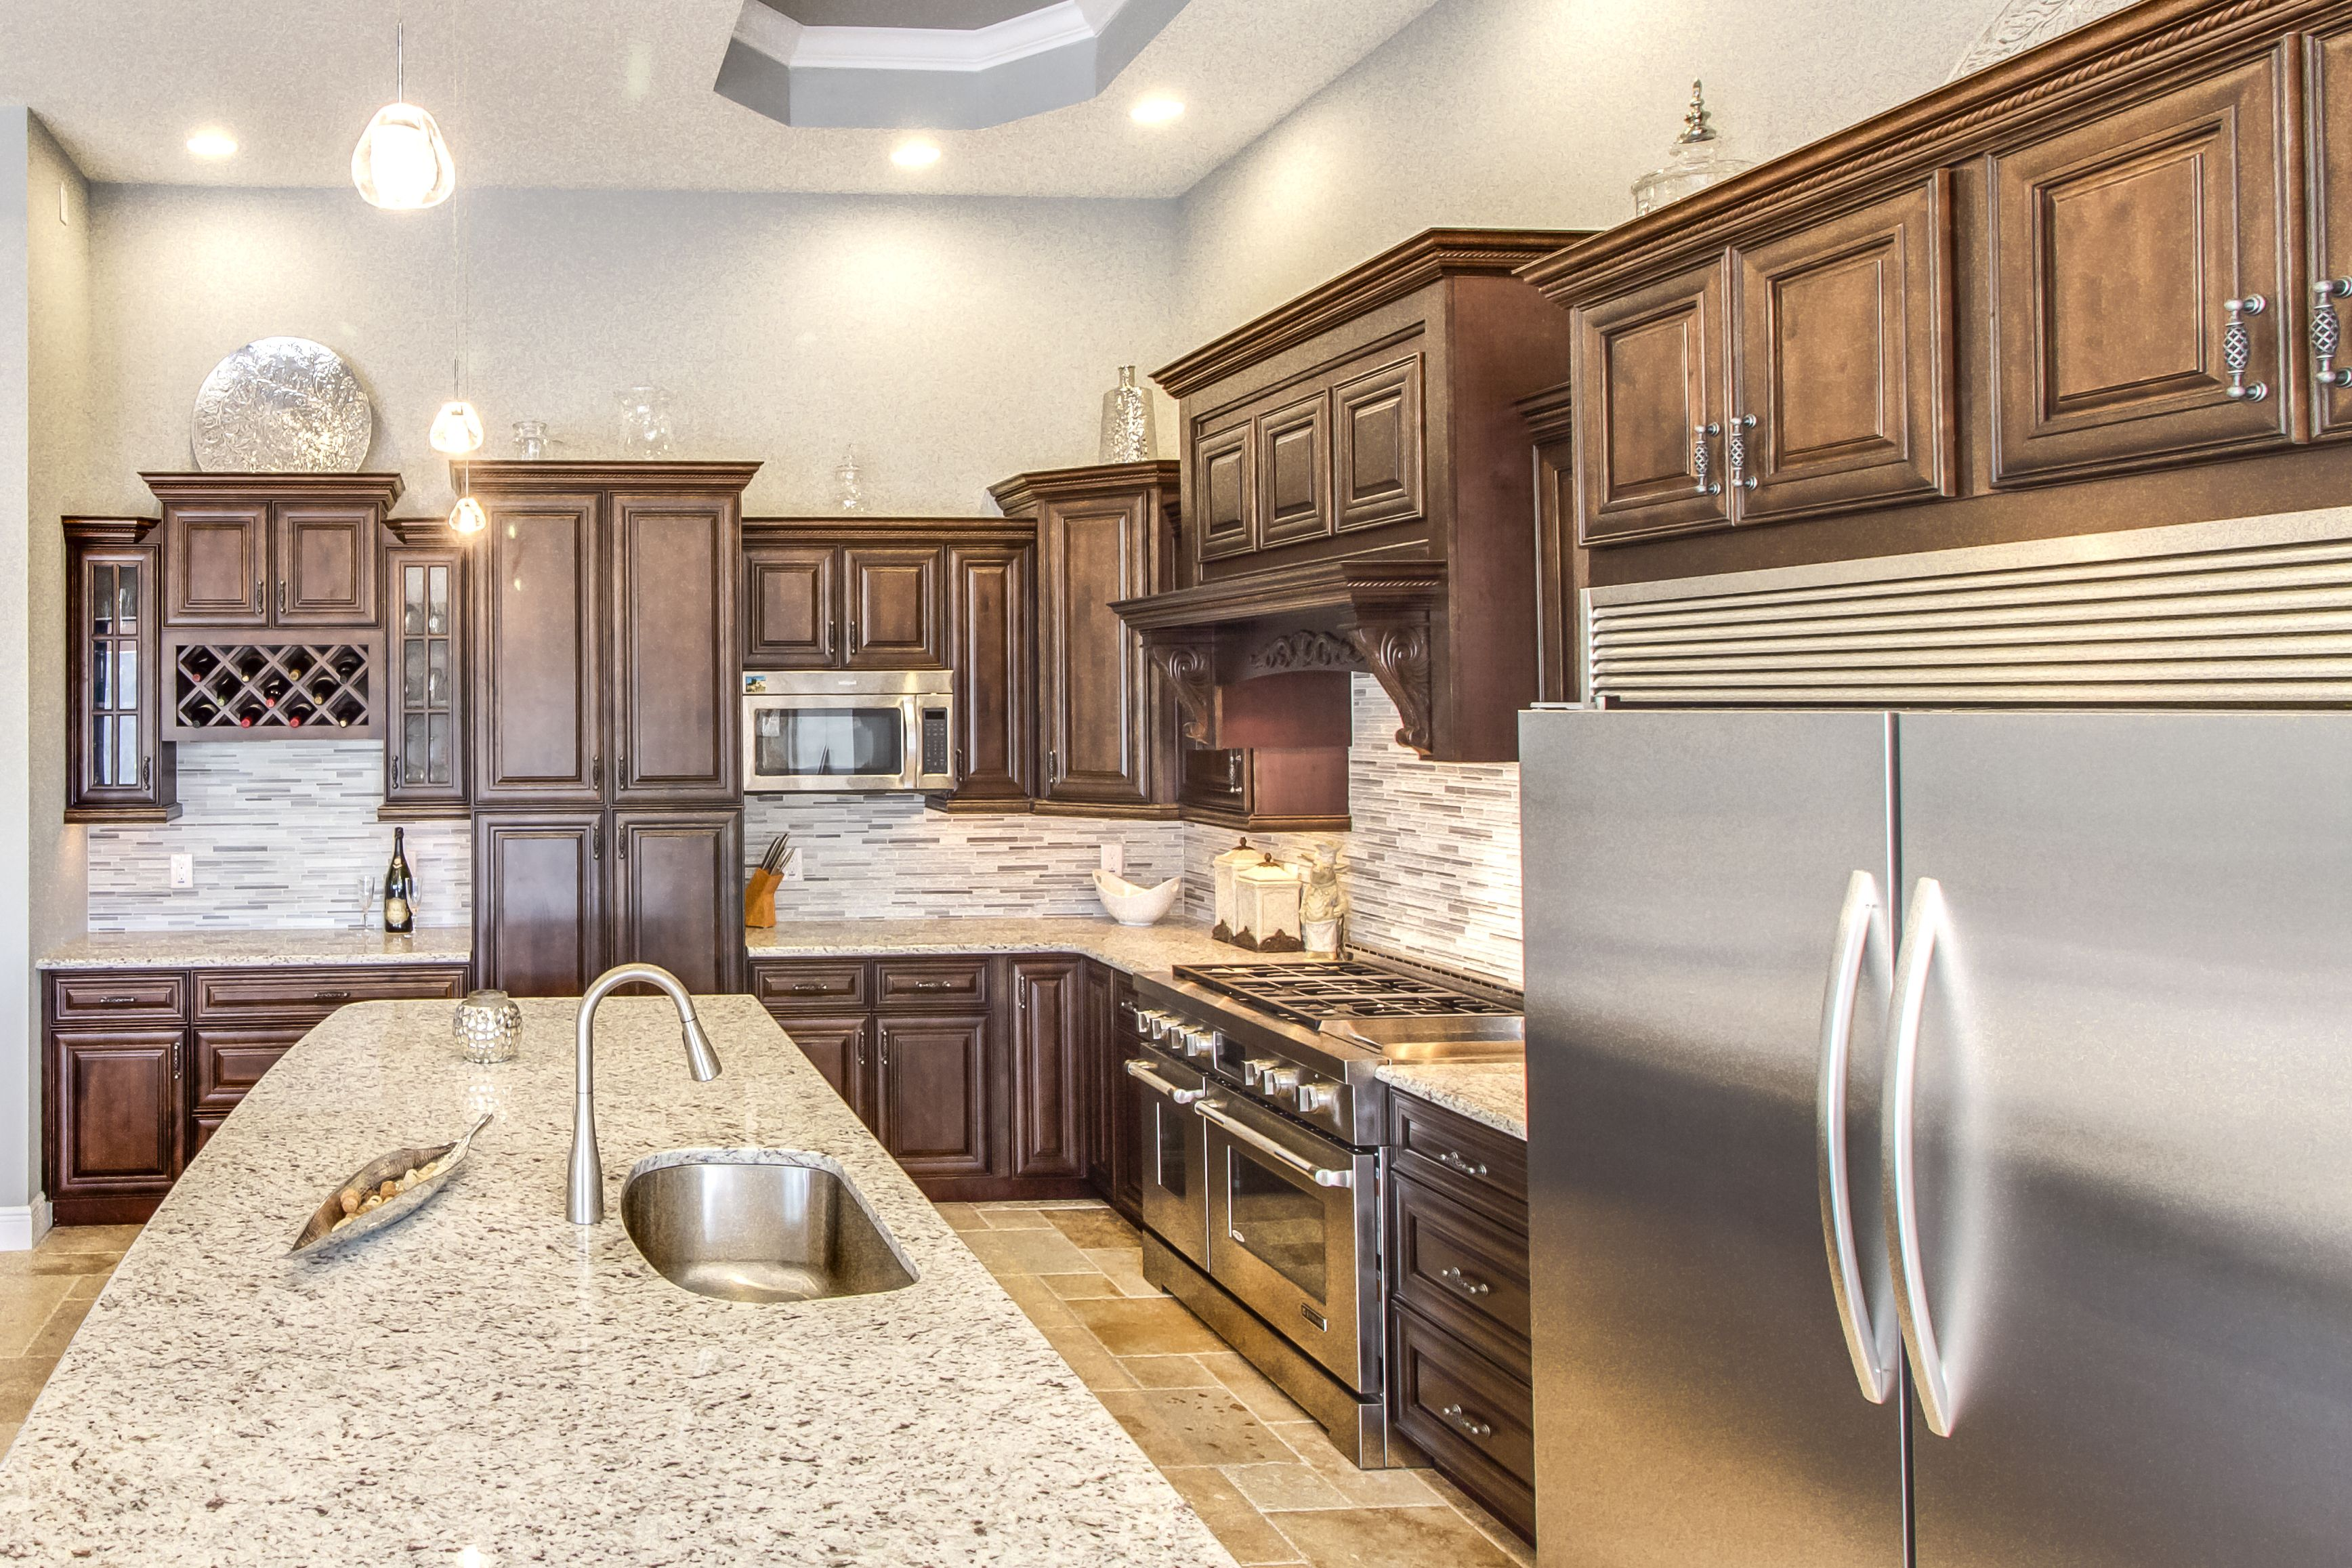 Pin By Import Cabinet Brokers Of Kent On Kitchens Kitchen Cabinets In Bathroom Built In Cabinets Wood Kitchen